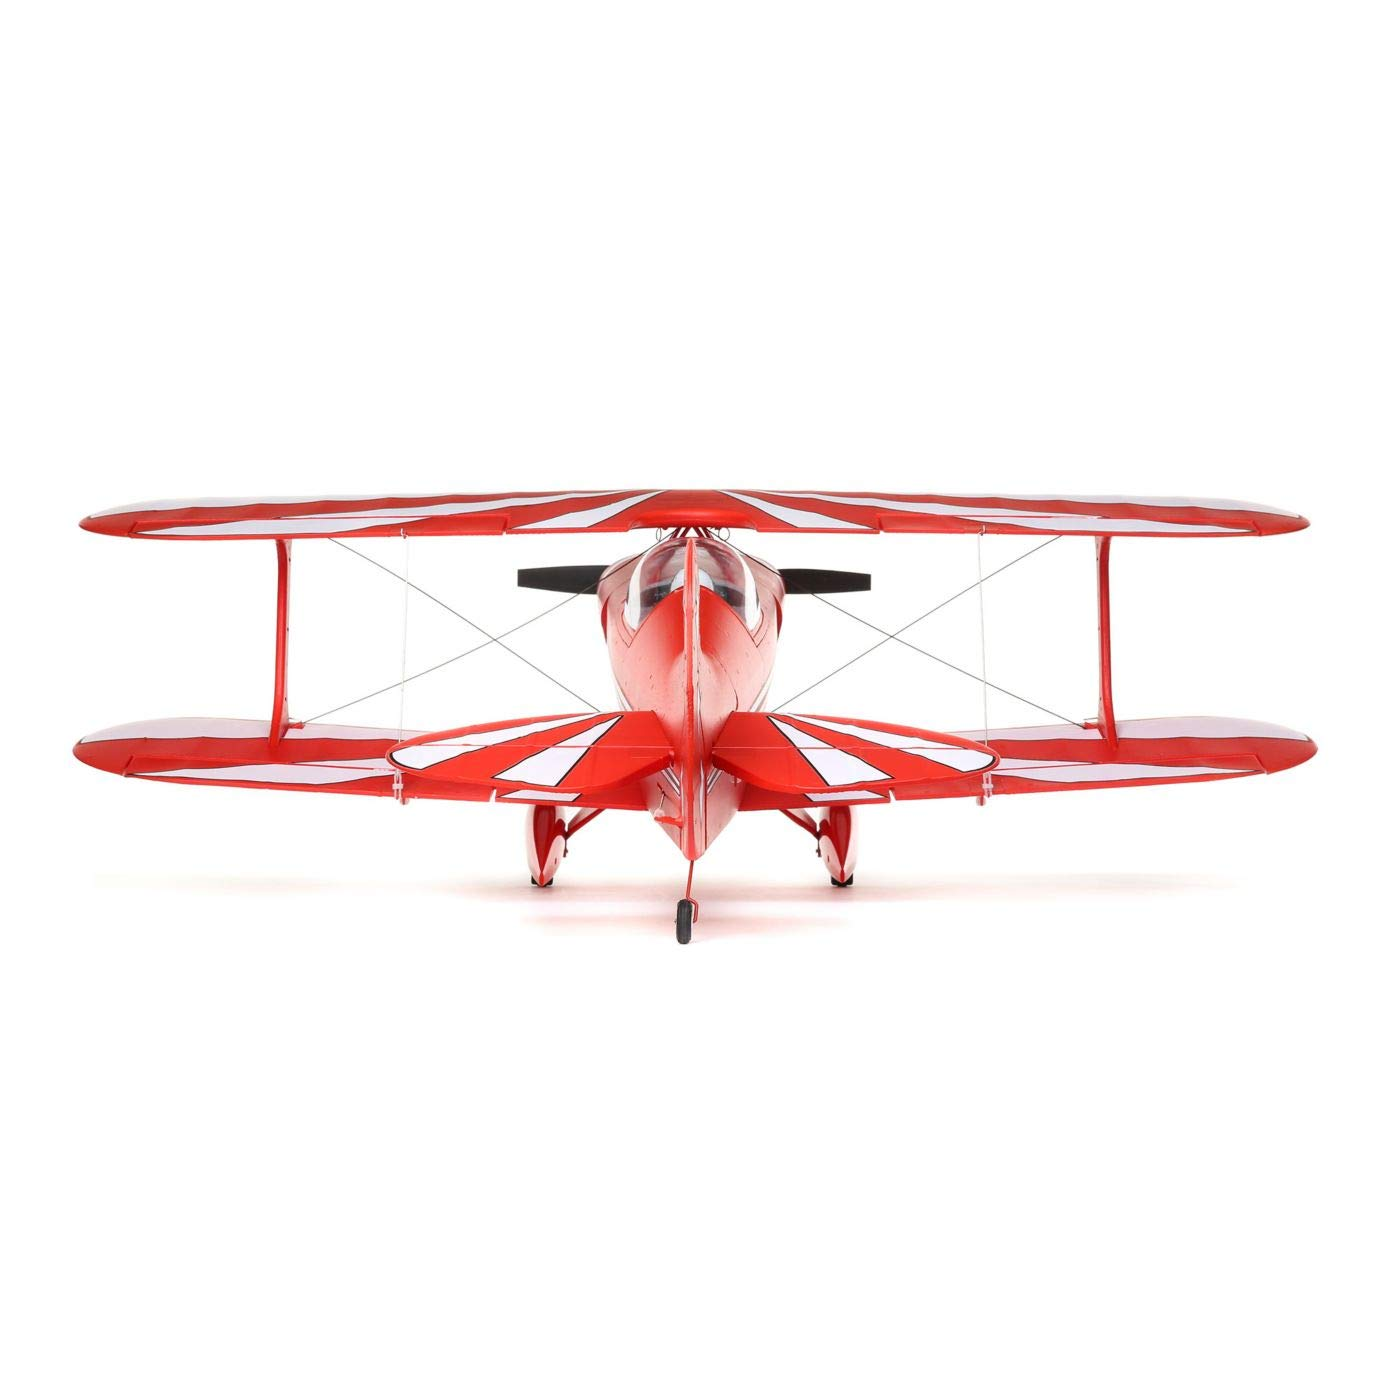 Amazon.com: E-flite Pitts S-1S 33.465 in PNP: Toys & Games